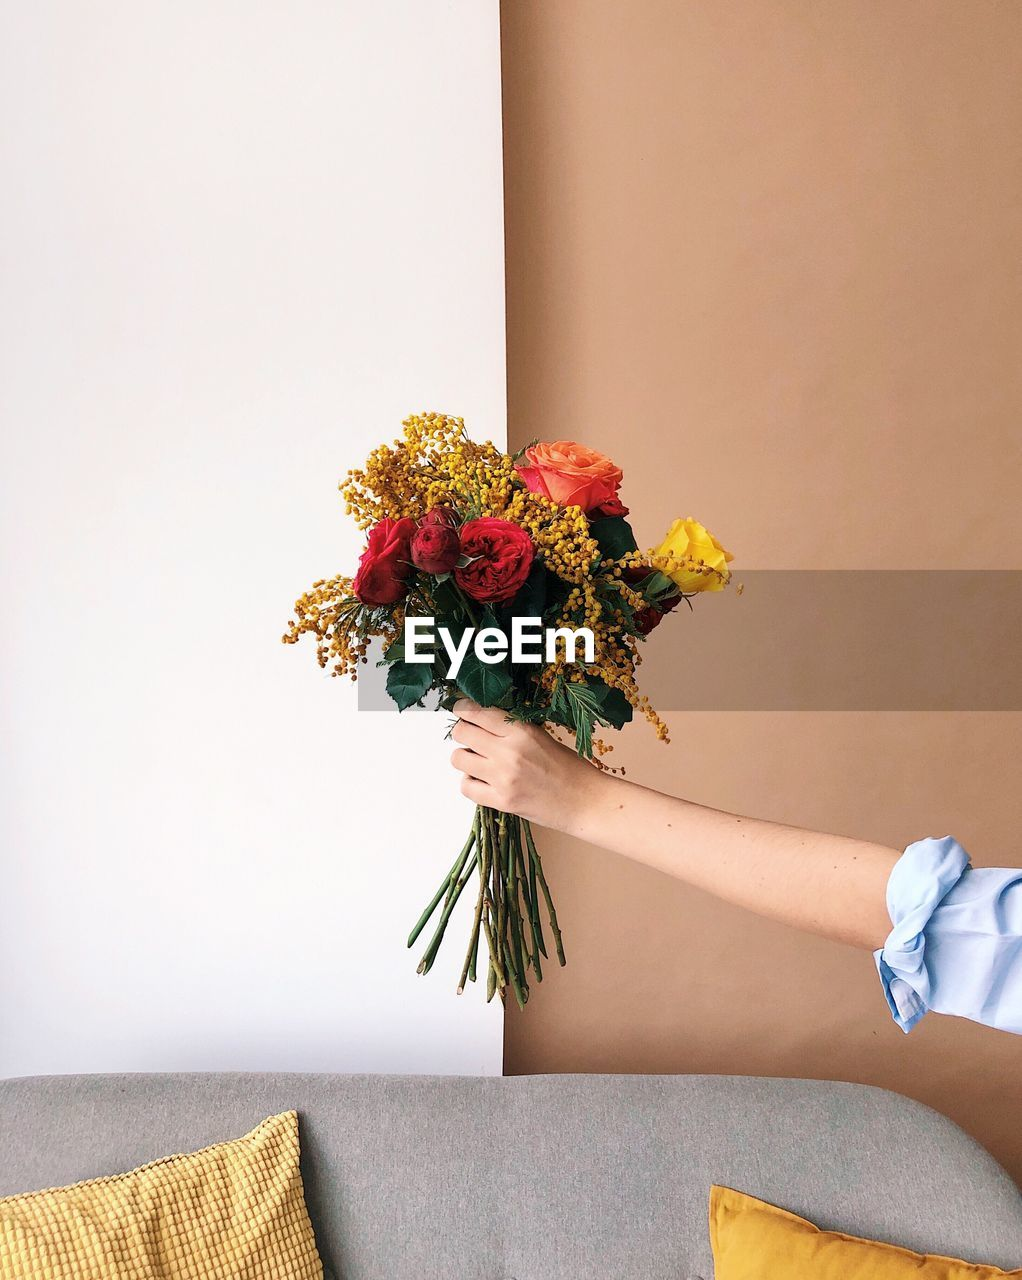 flowering plant, flower, plant, indoors, flower arrangement, wall - building feature, nature, vulnerability, bouquet, fragility, beauty in nature, women, real people, one person, freshness, human hand, vase, human body part, hand, holding, flower head, bunch of flowers